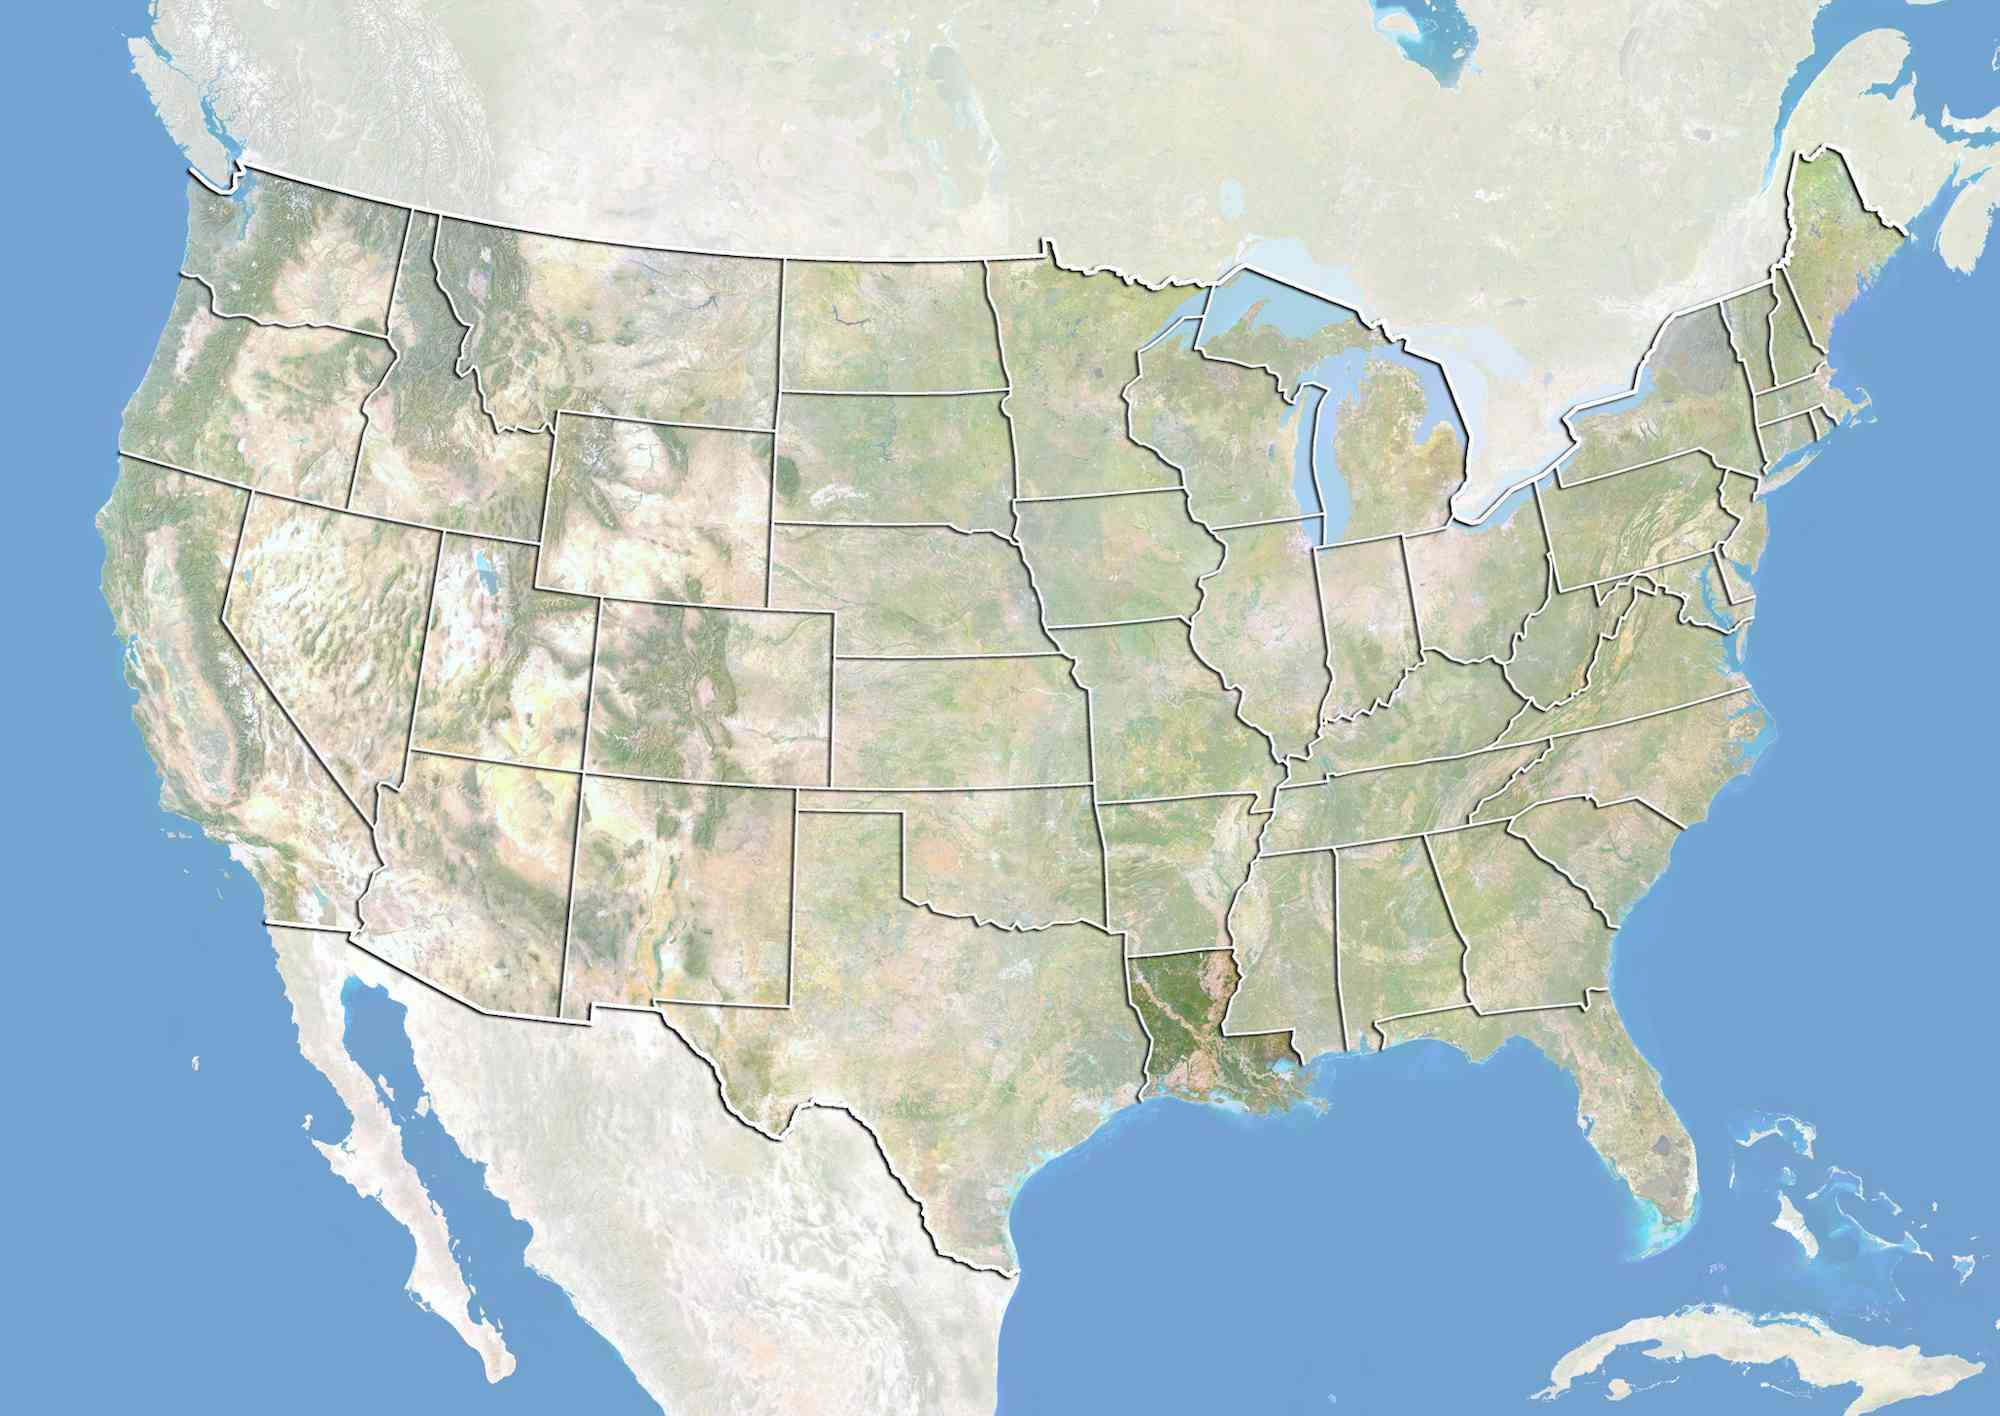 United States and the State of Louisiana, Satellite Image With Bump Effect